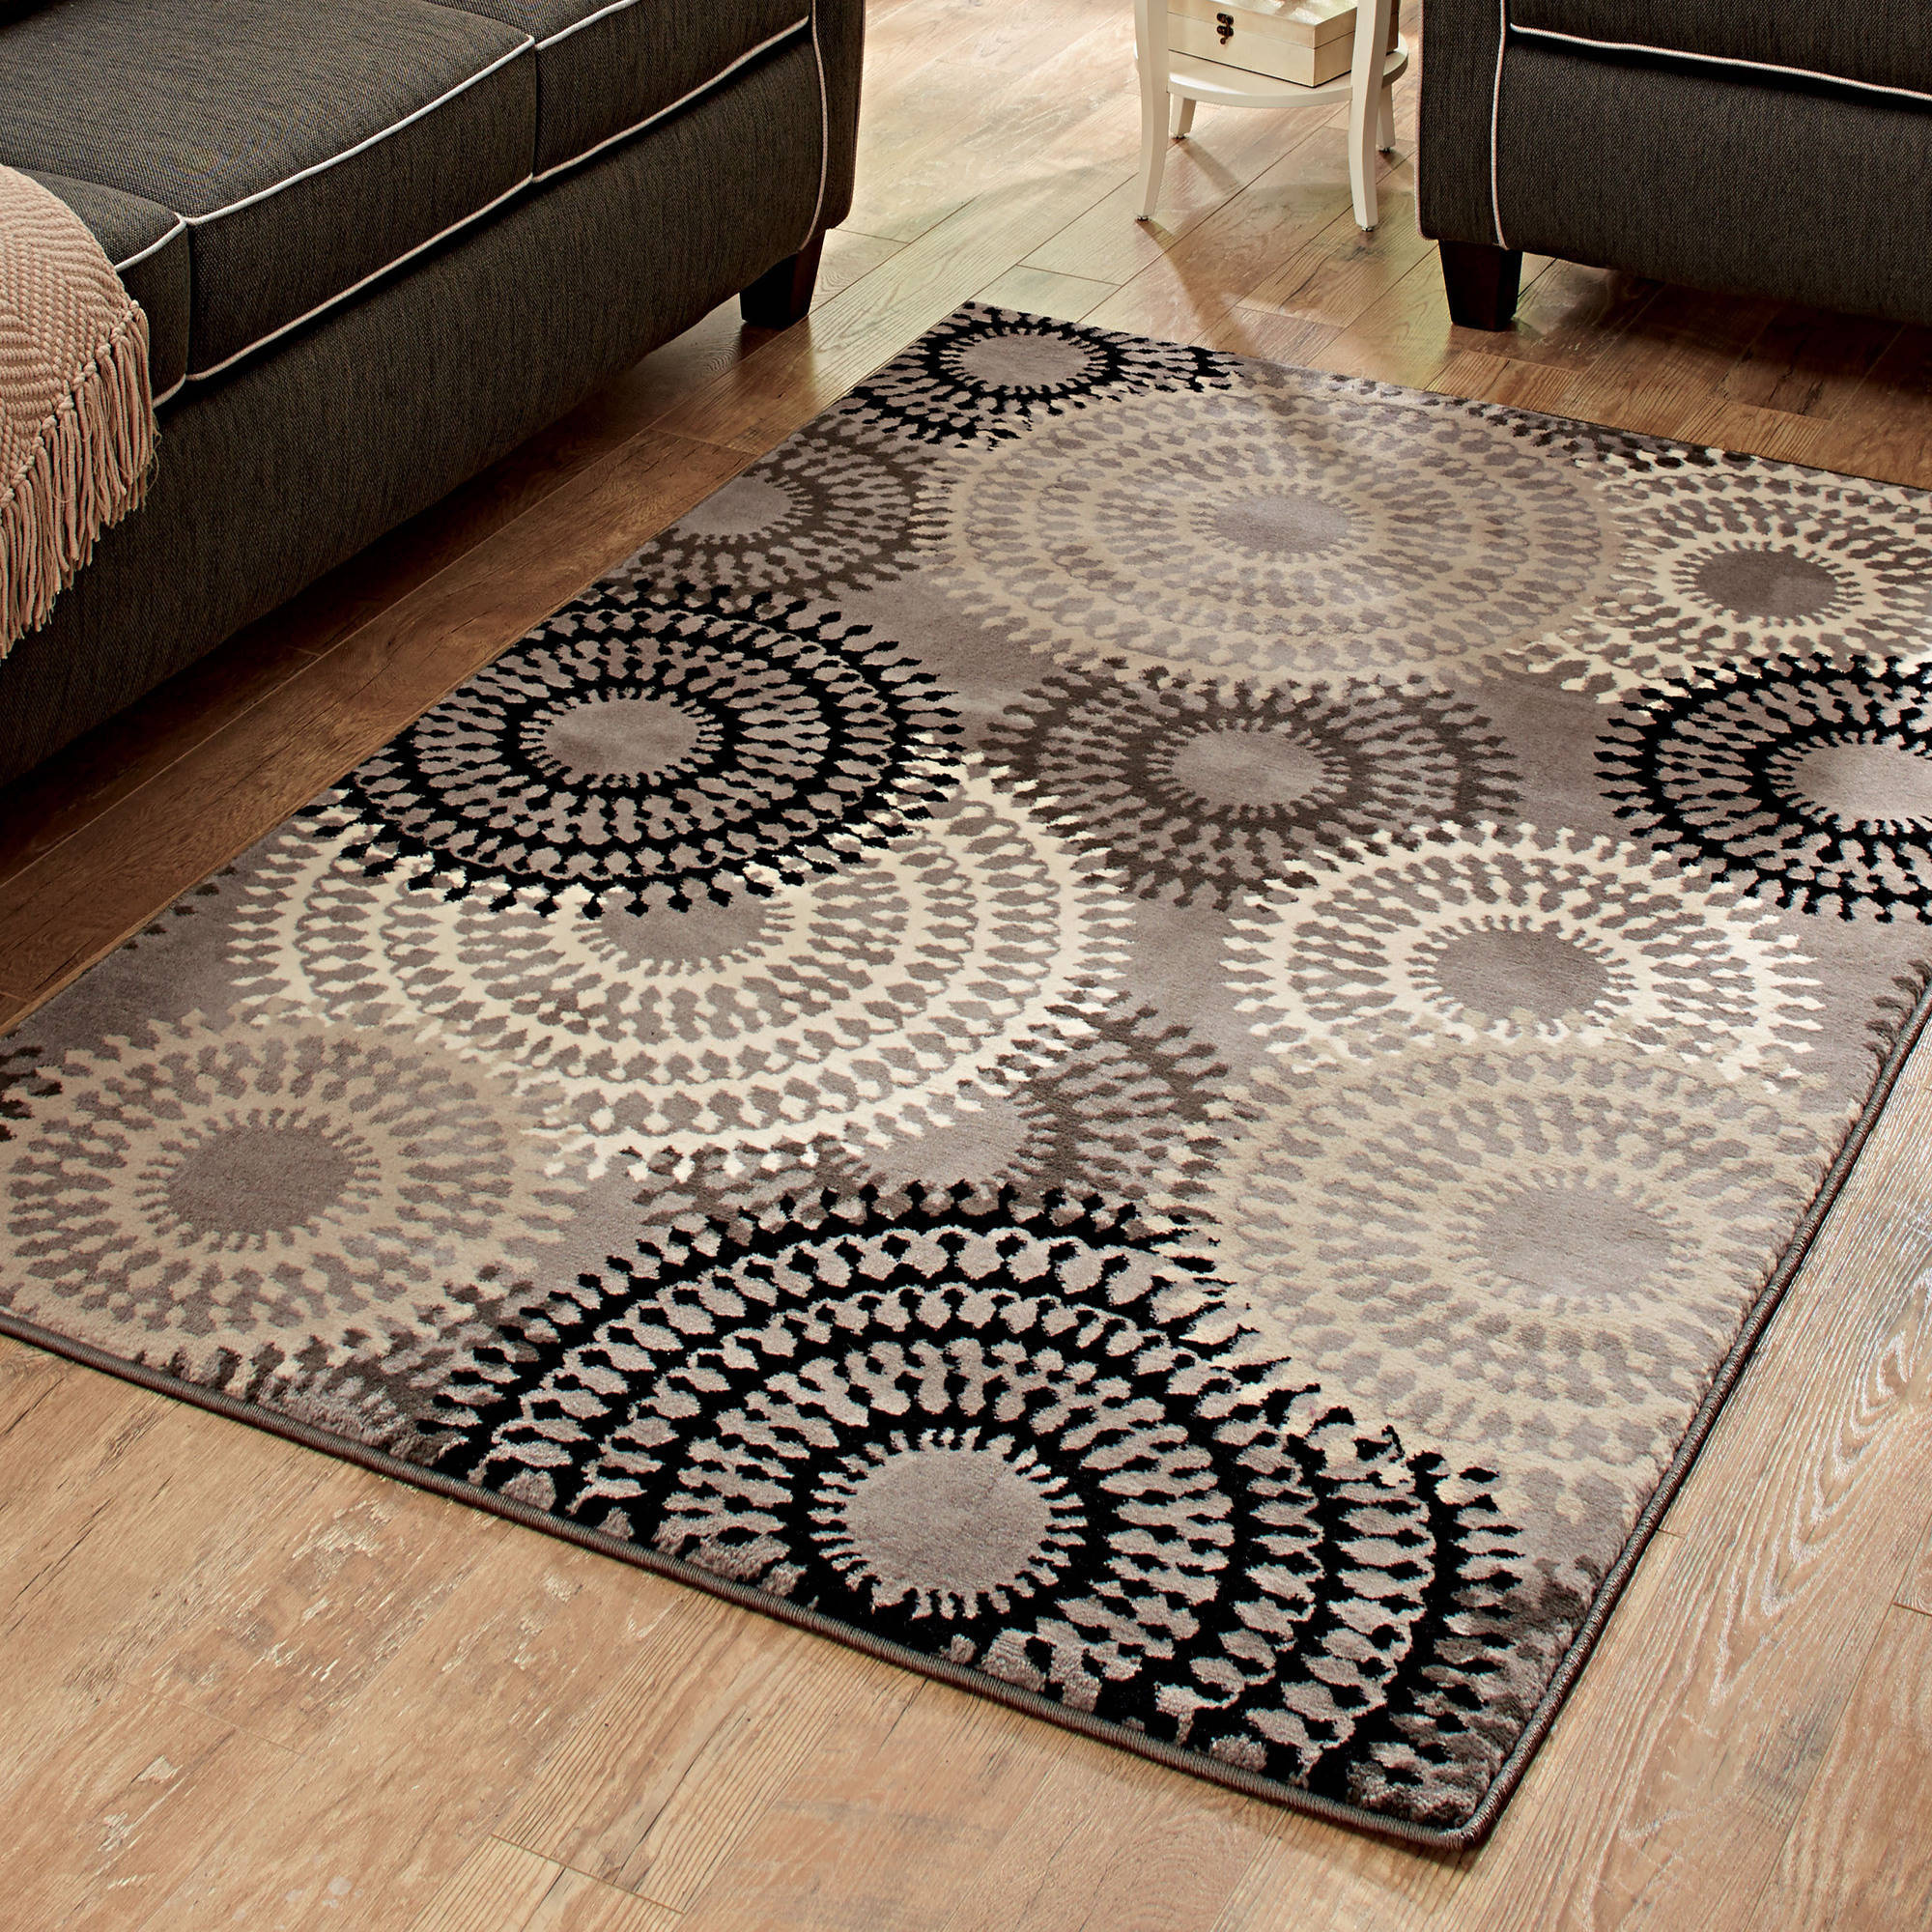 area rugs better homes and gardens taupe ornate circles area rug or runner YKLCWHH